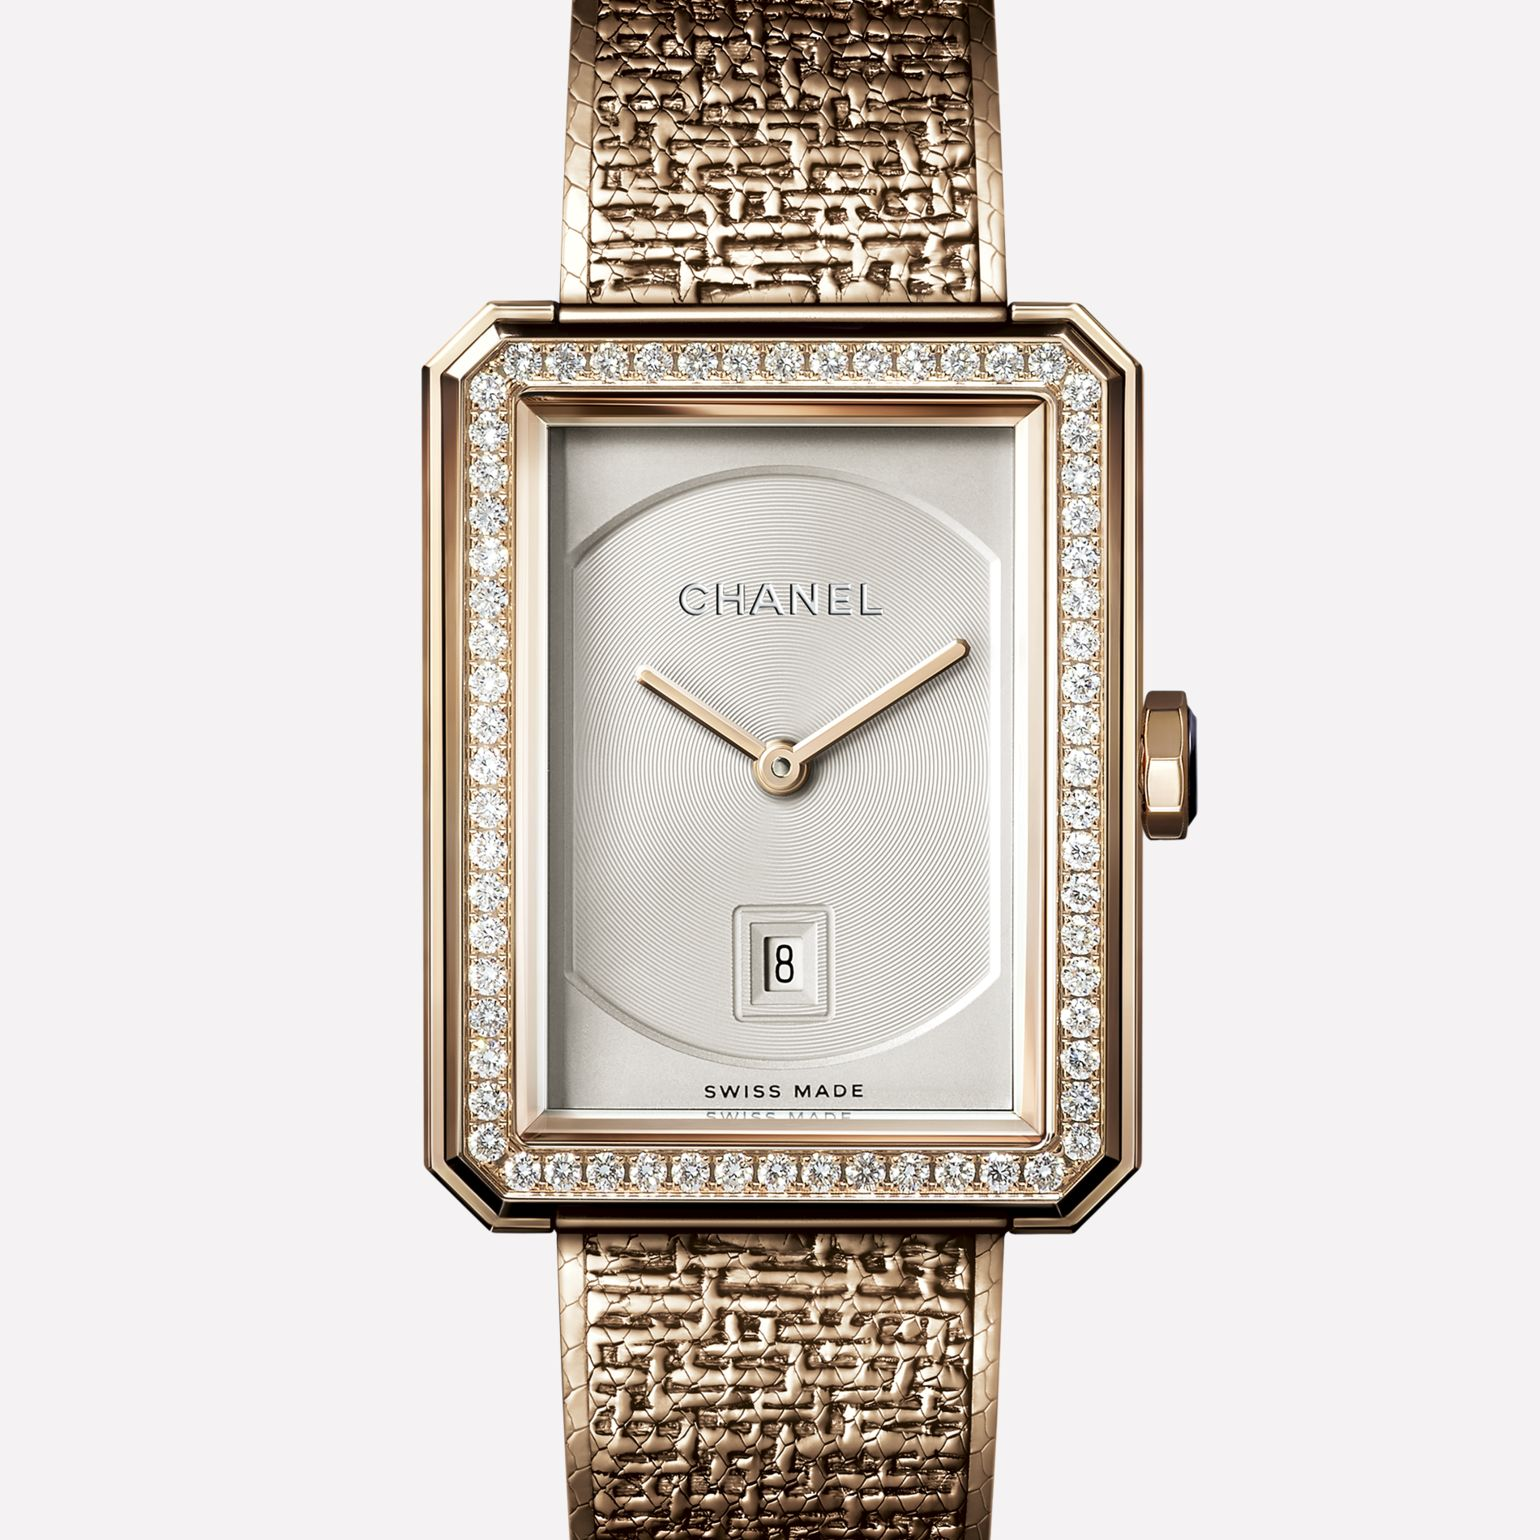 PREMIÈRE·BOY DE CHANEL TWEED Medium version, BEIGE GOLD set with diamonds